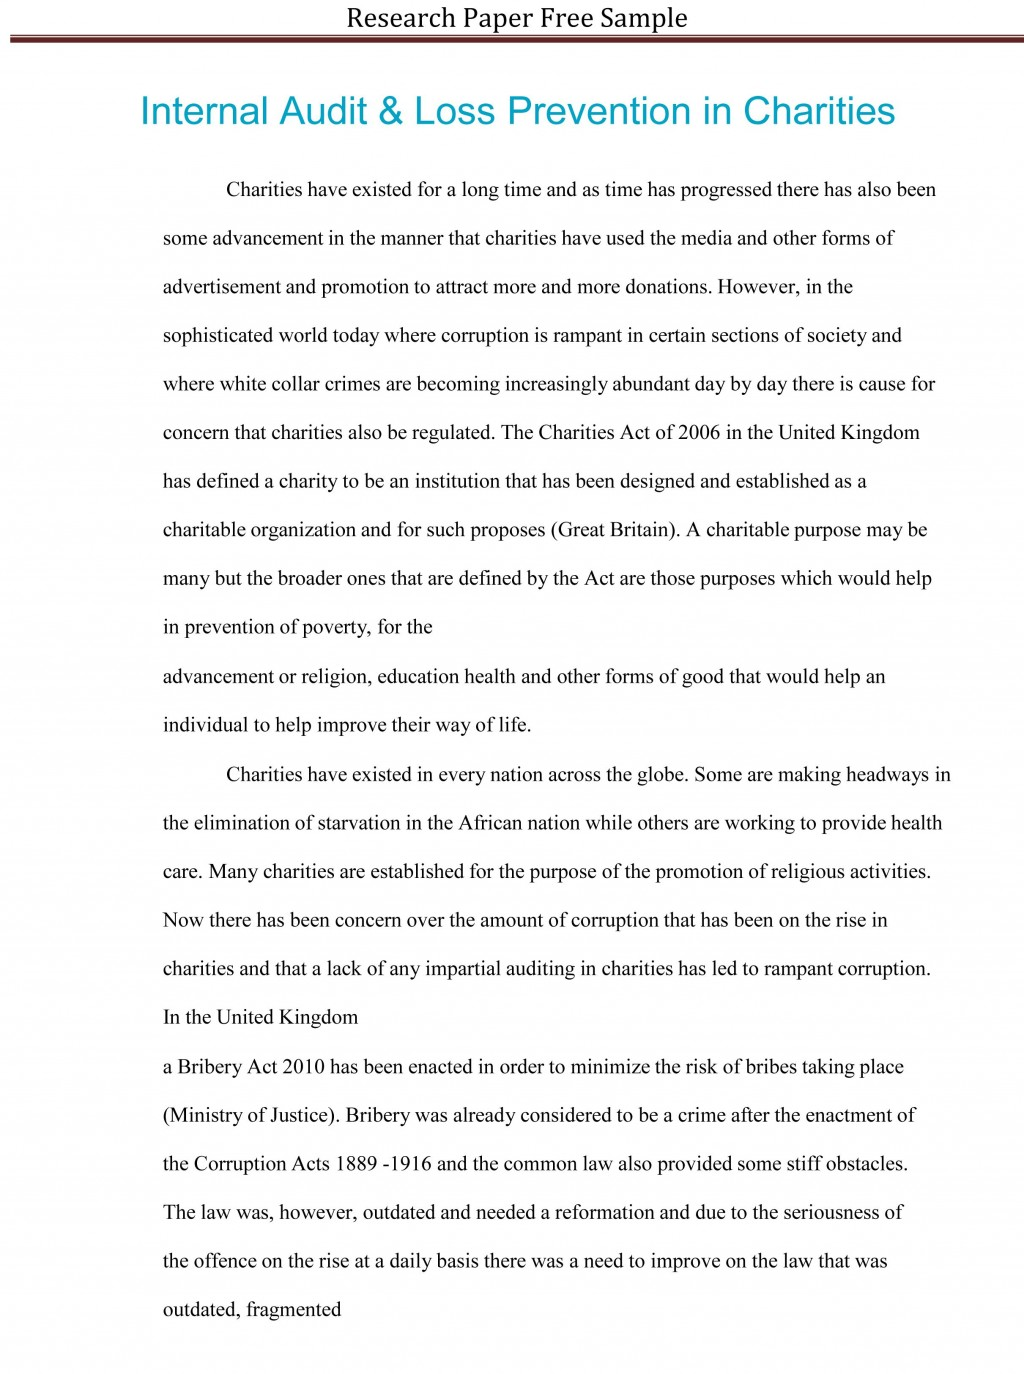 014 Ideas To Write Research Paper On Dreaded A Good Large